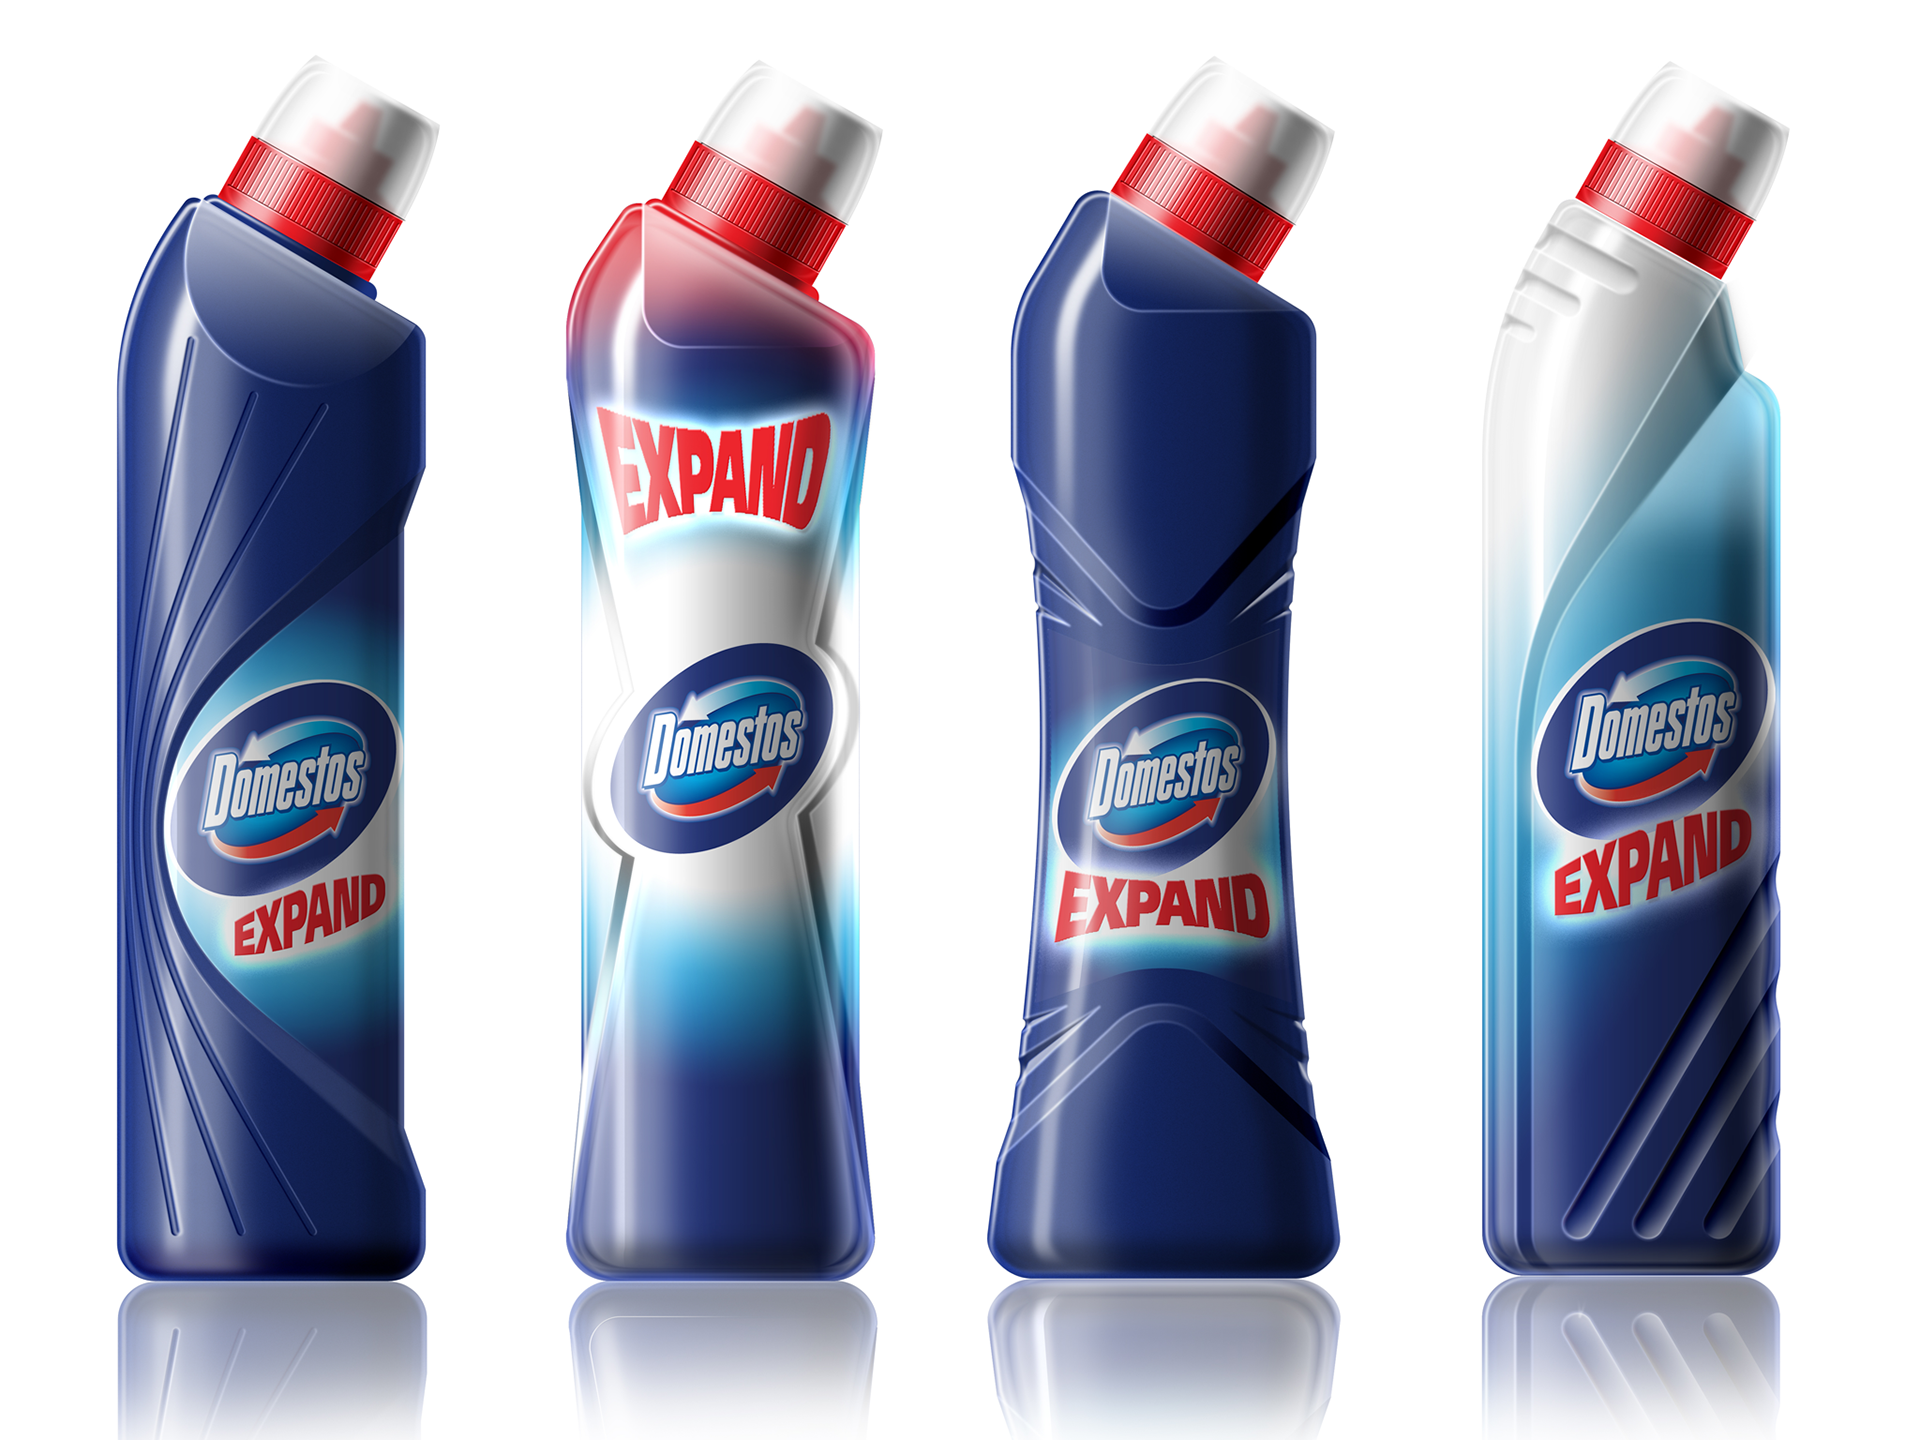 We explored in detail how to communicate the product USP - it's expanding foam bleach - through the form of the bottle and pack graphics, communicating this through Photoshop renderings. This is of particular importance in a supermarket setting where purchase decisions are made quickly and instinctively. We quickly gained a good understanding of the limits of the form language by collaborating with the client brand team. We explored different print options from shrink-wraps and labels to direct bottle printing